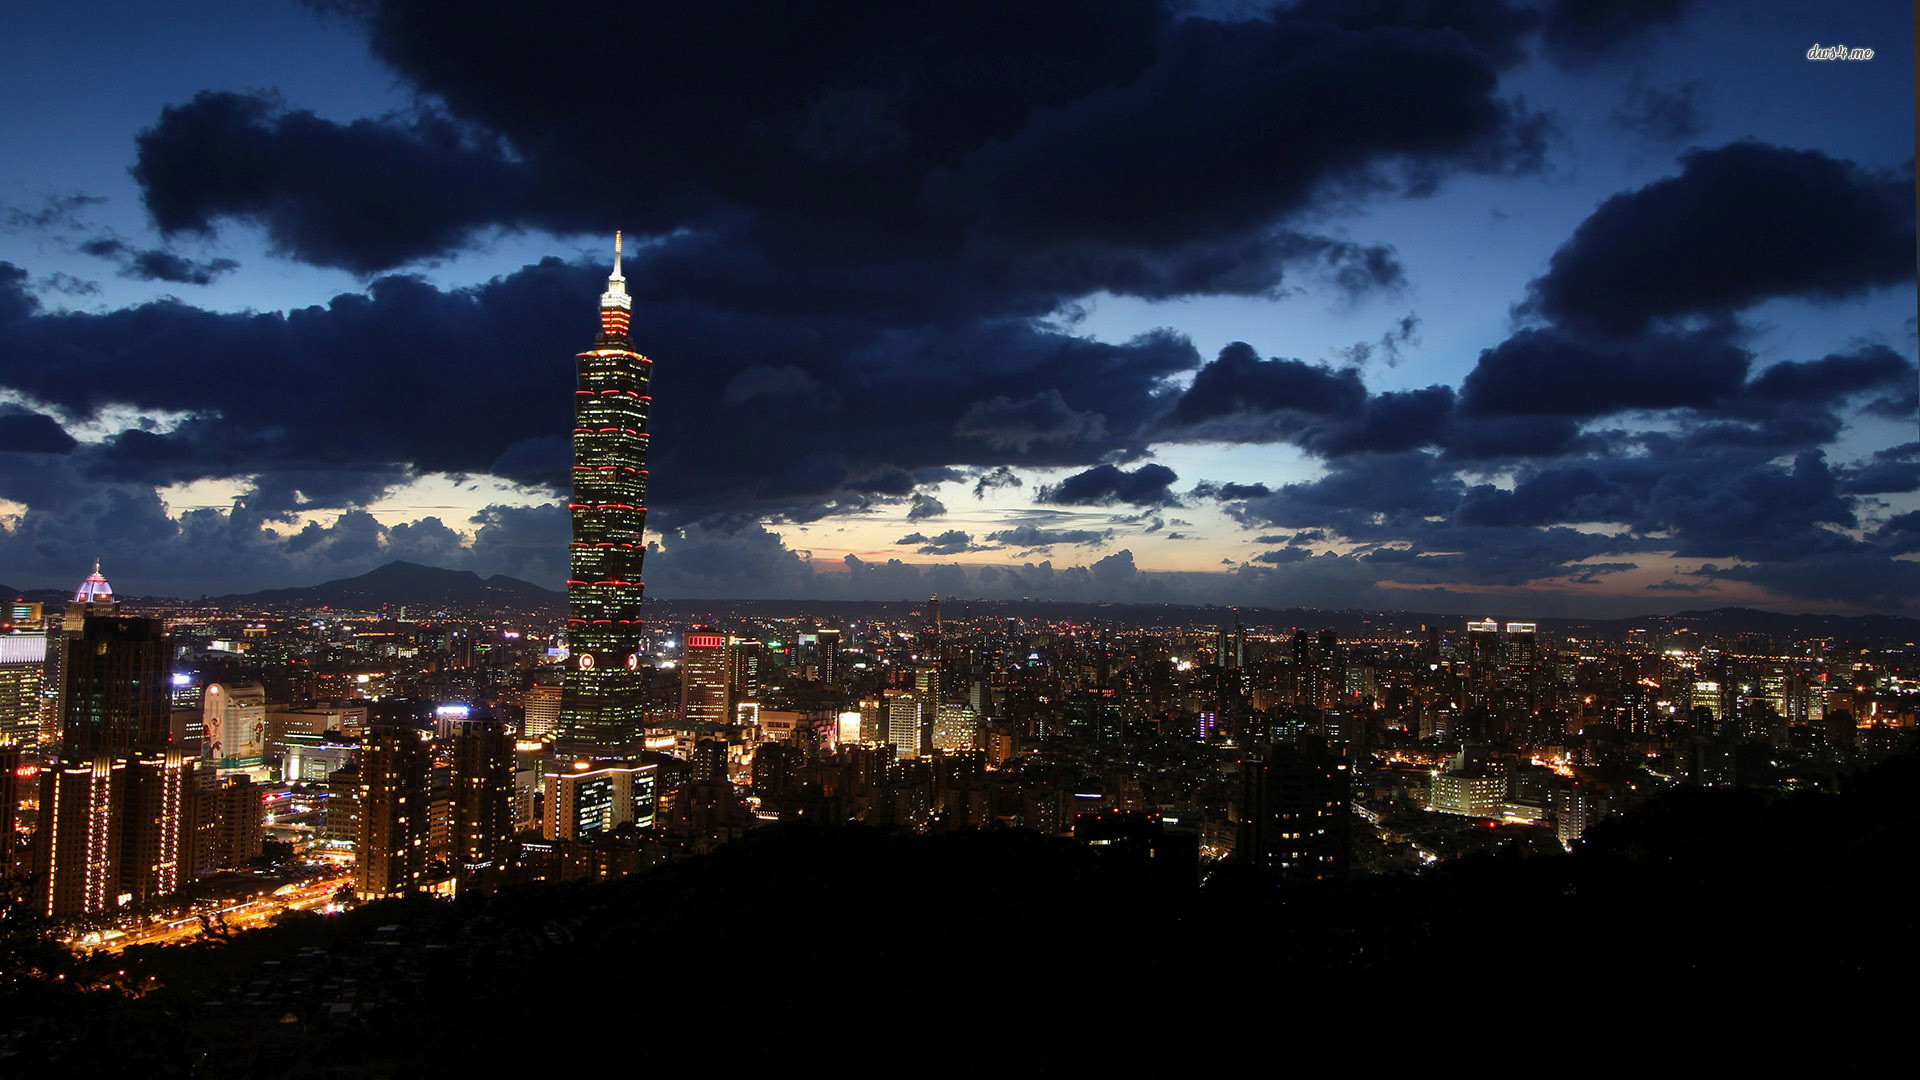 Res: 1920x1080, DARK CLOUDS ABOVE TAIPEI AT SUNSET WALLPAPER